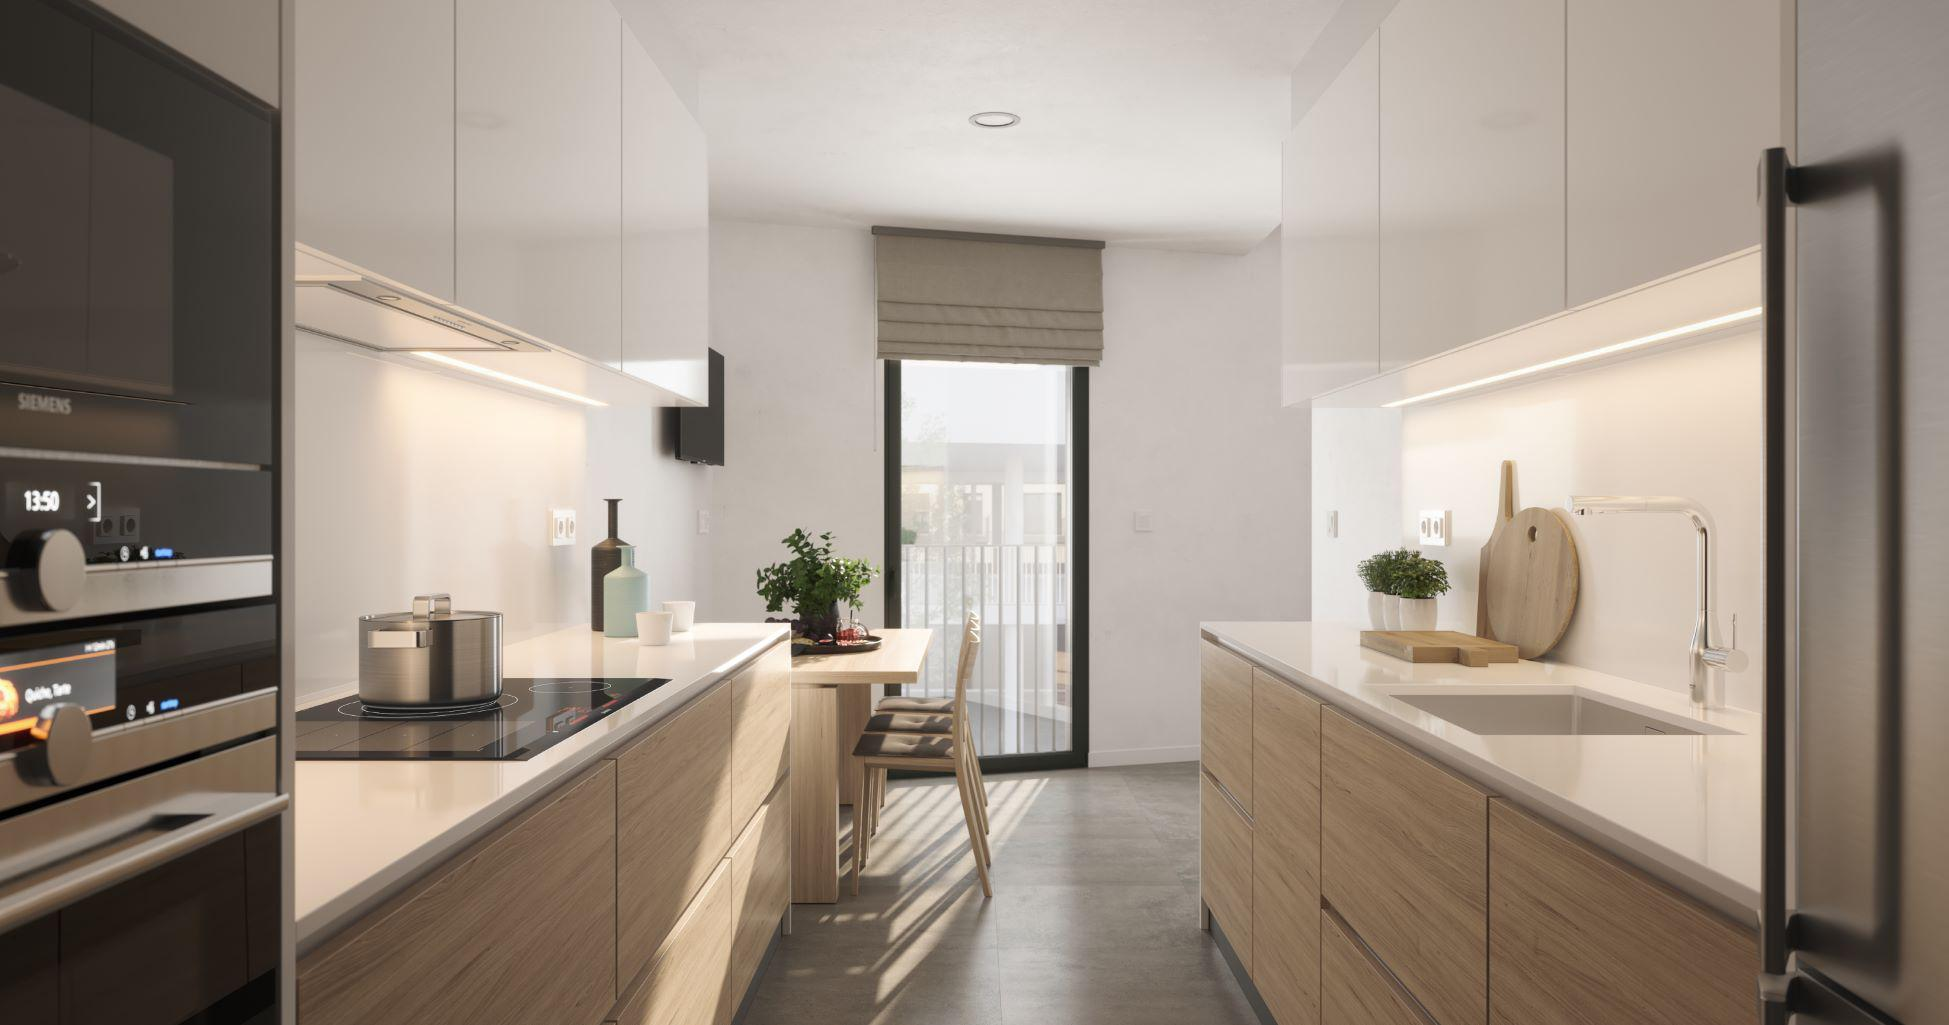 247289 Flat for sale in Les Corts, Les Corts 3